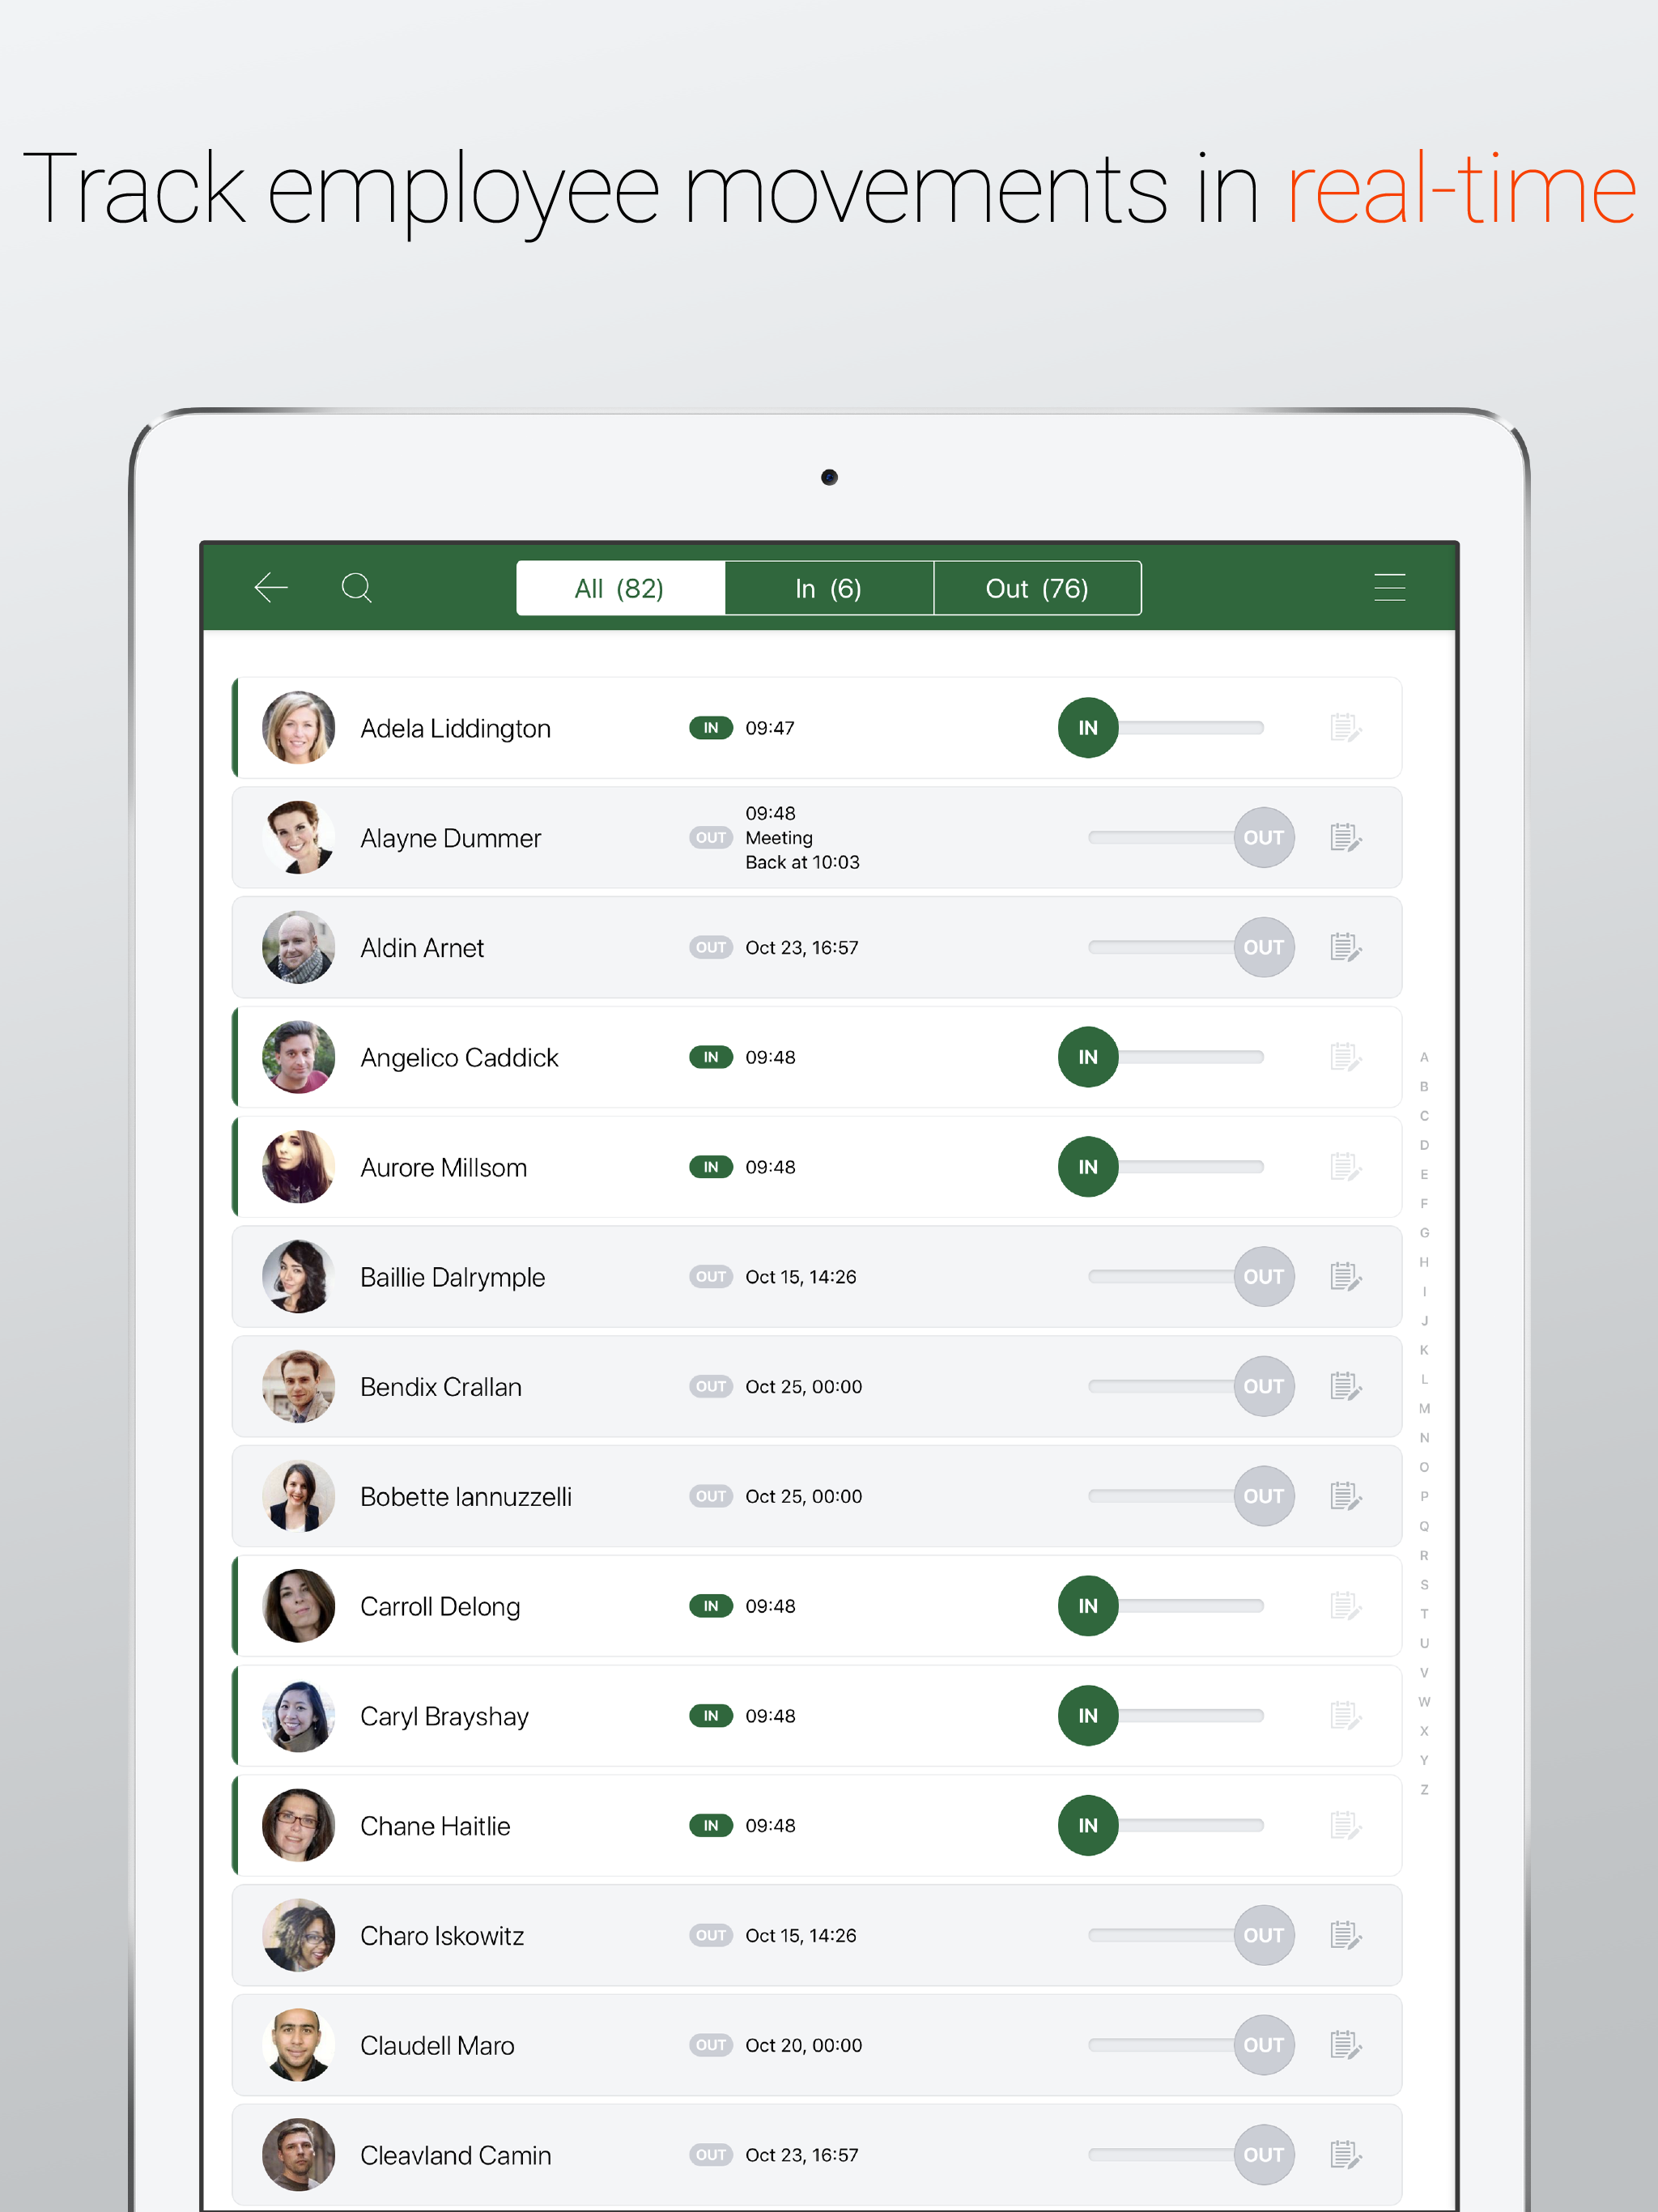 Employee movements in real time